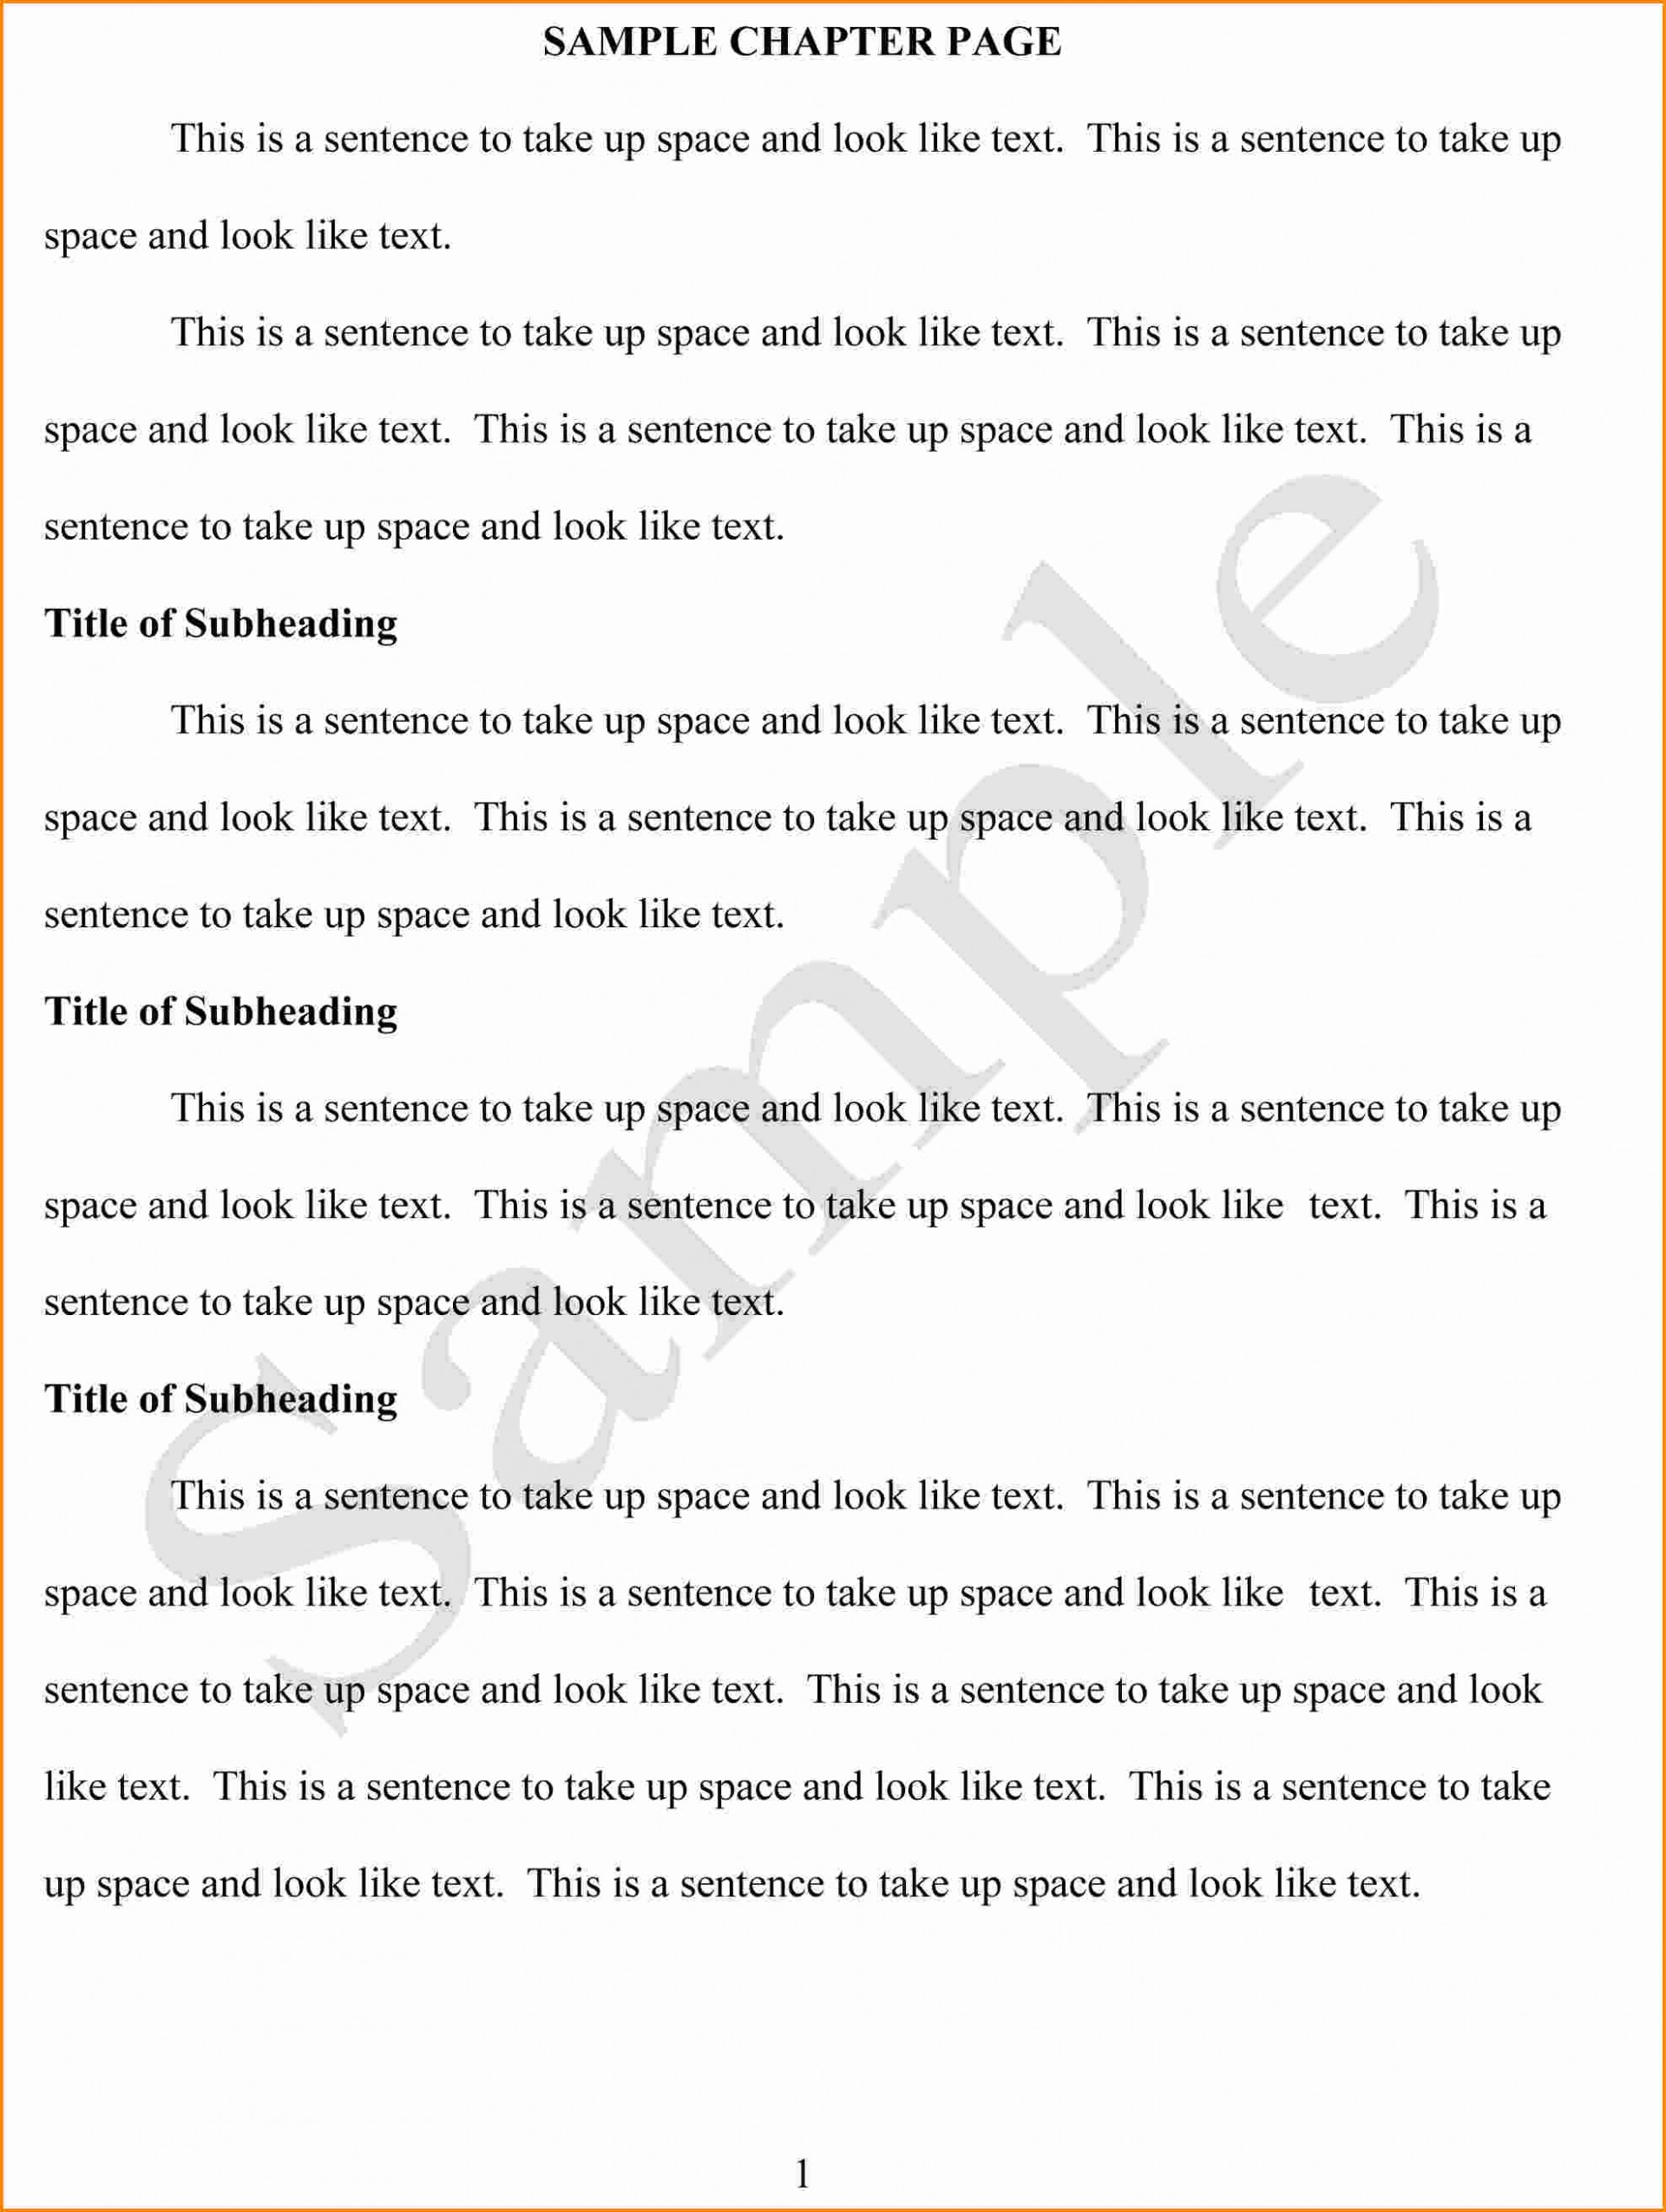 006 Thesis Essay Bullying About In Schools Format Of Persuasive On High School Application Samples Example Amazing The Cause And Effect Cyberbullying 1920